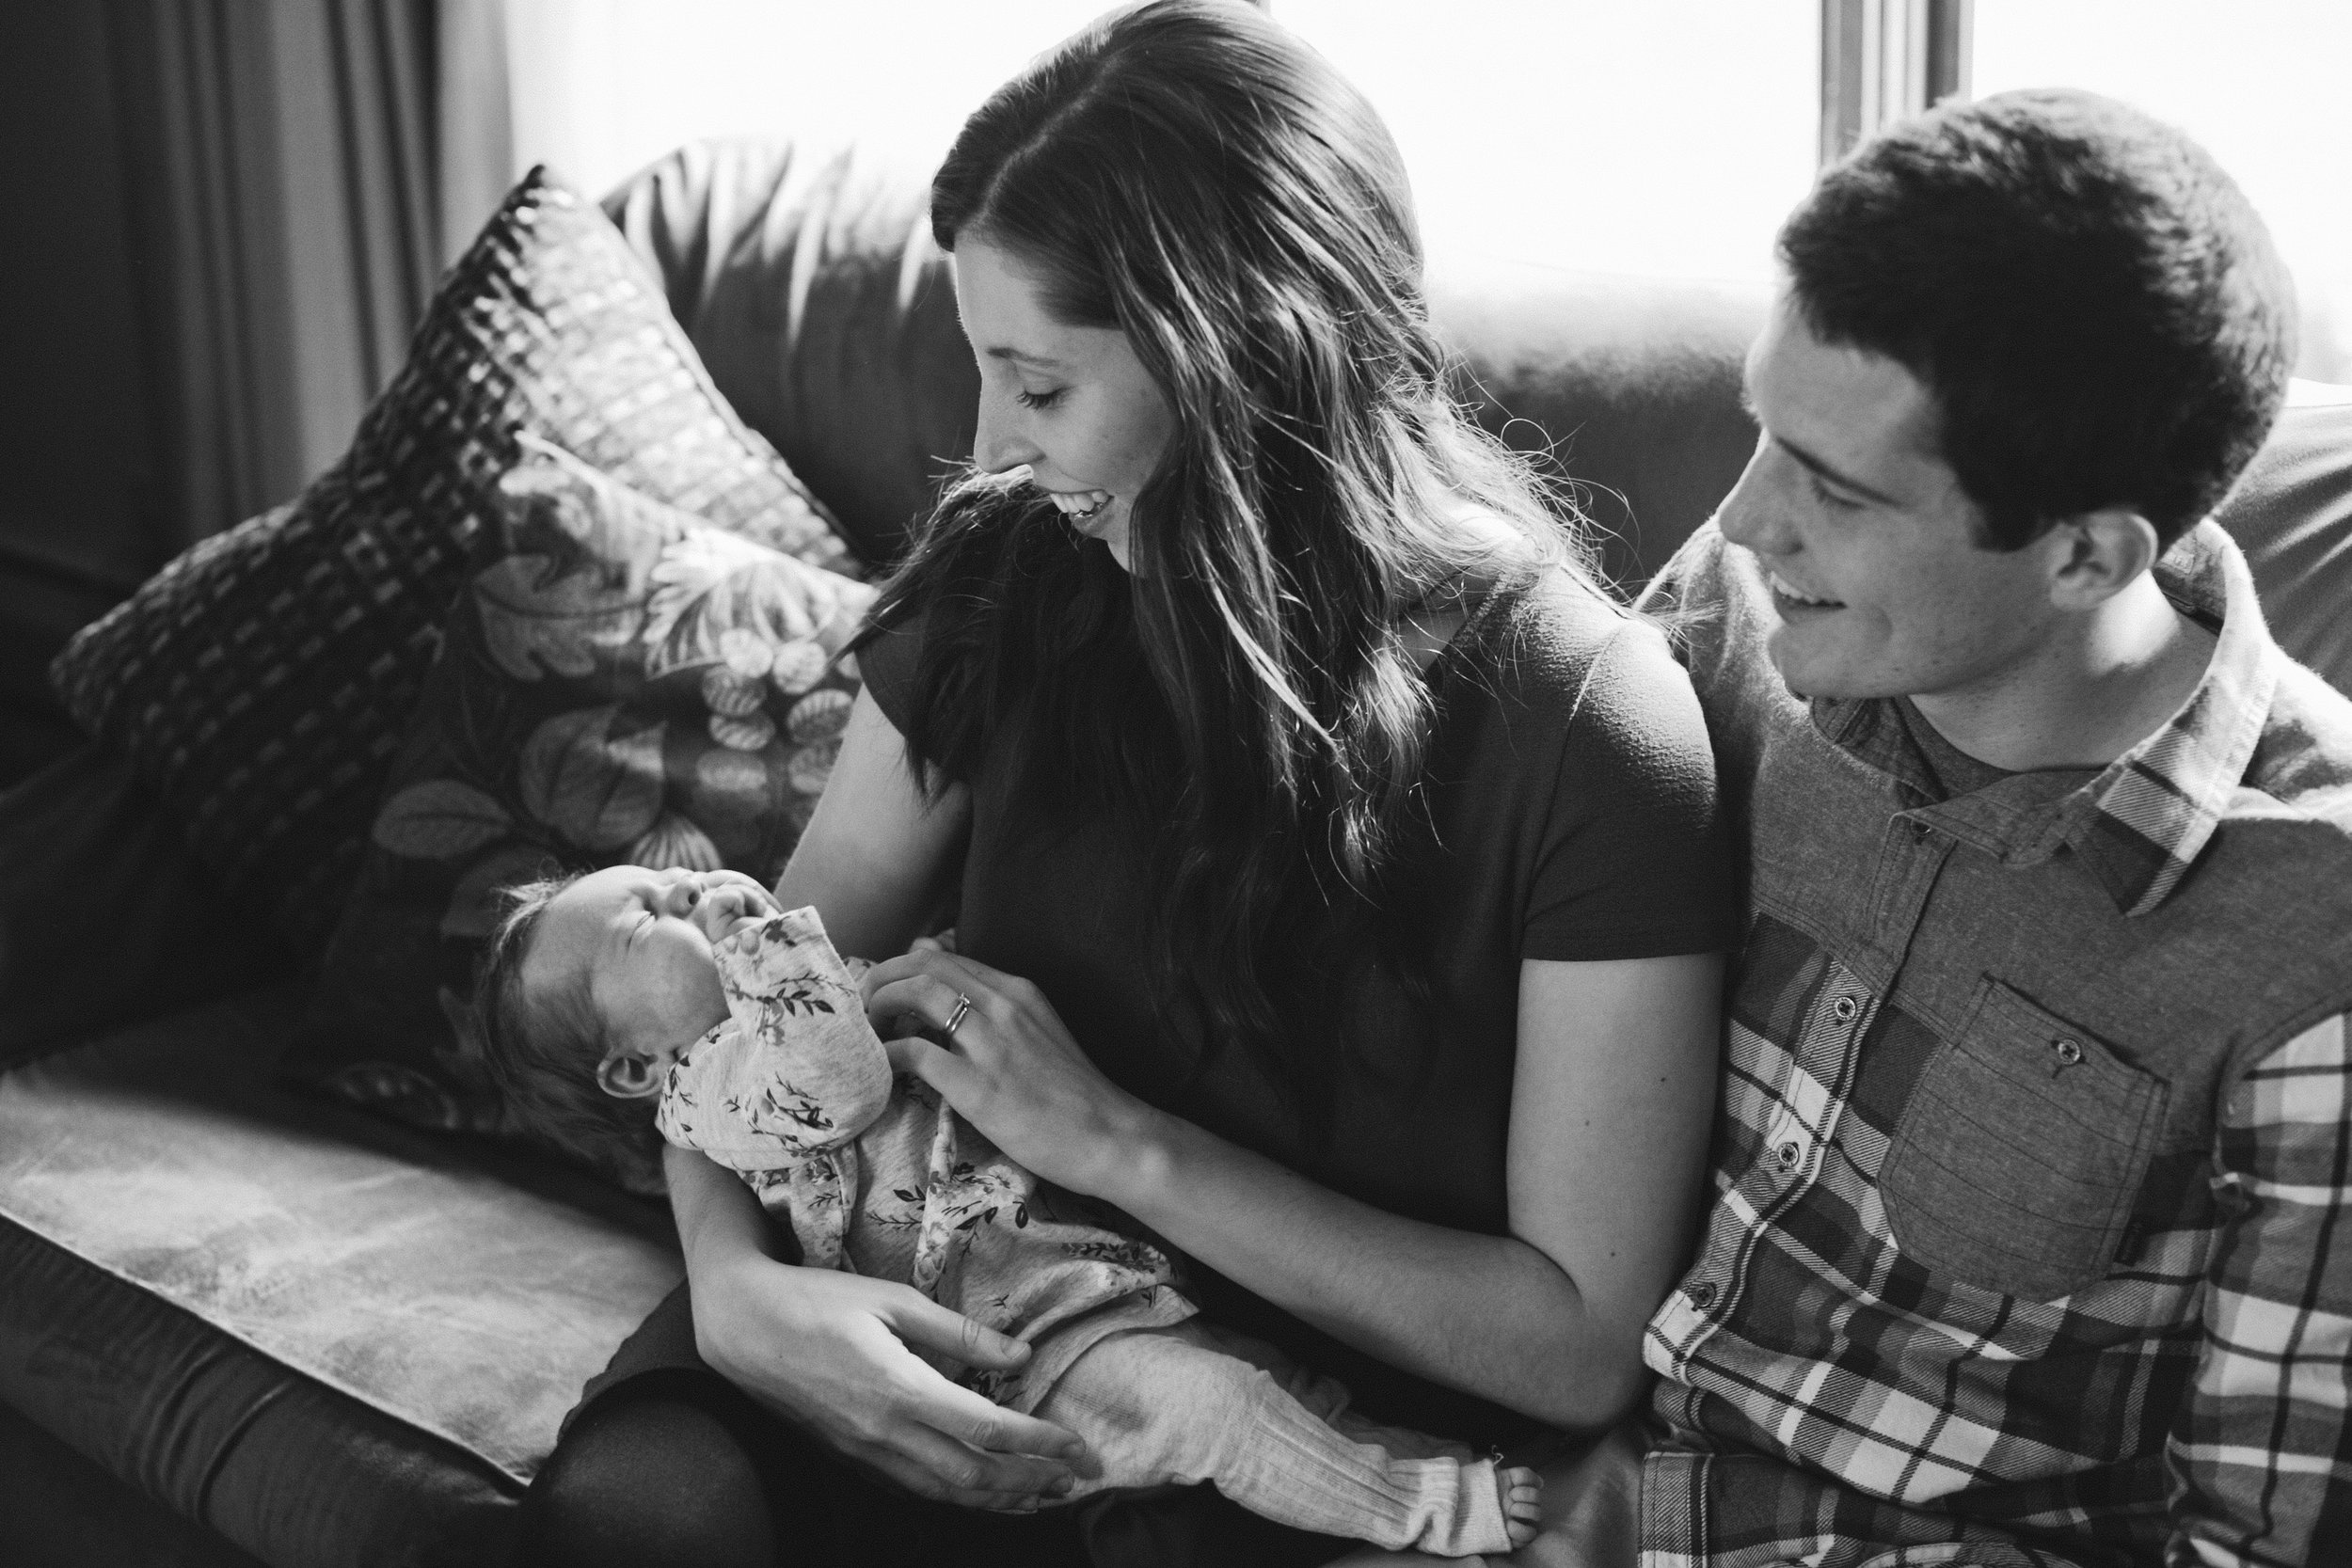 We photographed this sweet newborn session inside, since it was so cold outdoors the day we had picked for family photos! Isla was just getting tired, so we were able to caprue her awak and asleep. This in-home family lifestyle photo session is my new favorite.